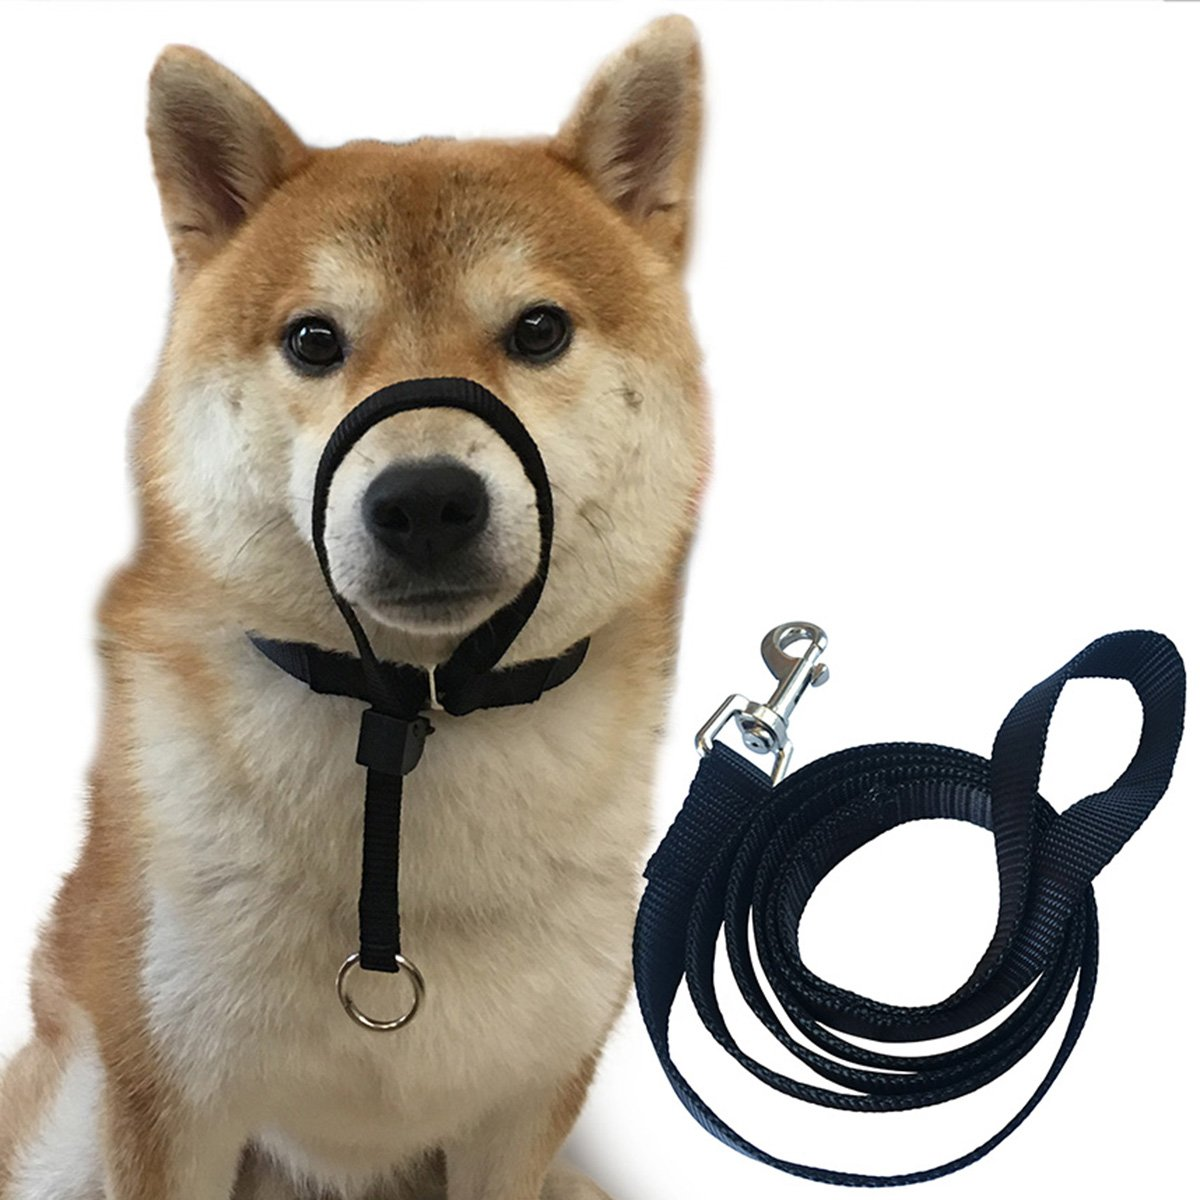 Dog Head Collar Halter Durable Painless No Pain No Pull Training Collars with Leash (M(12''-20''), Black)